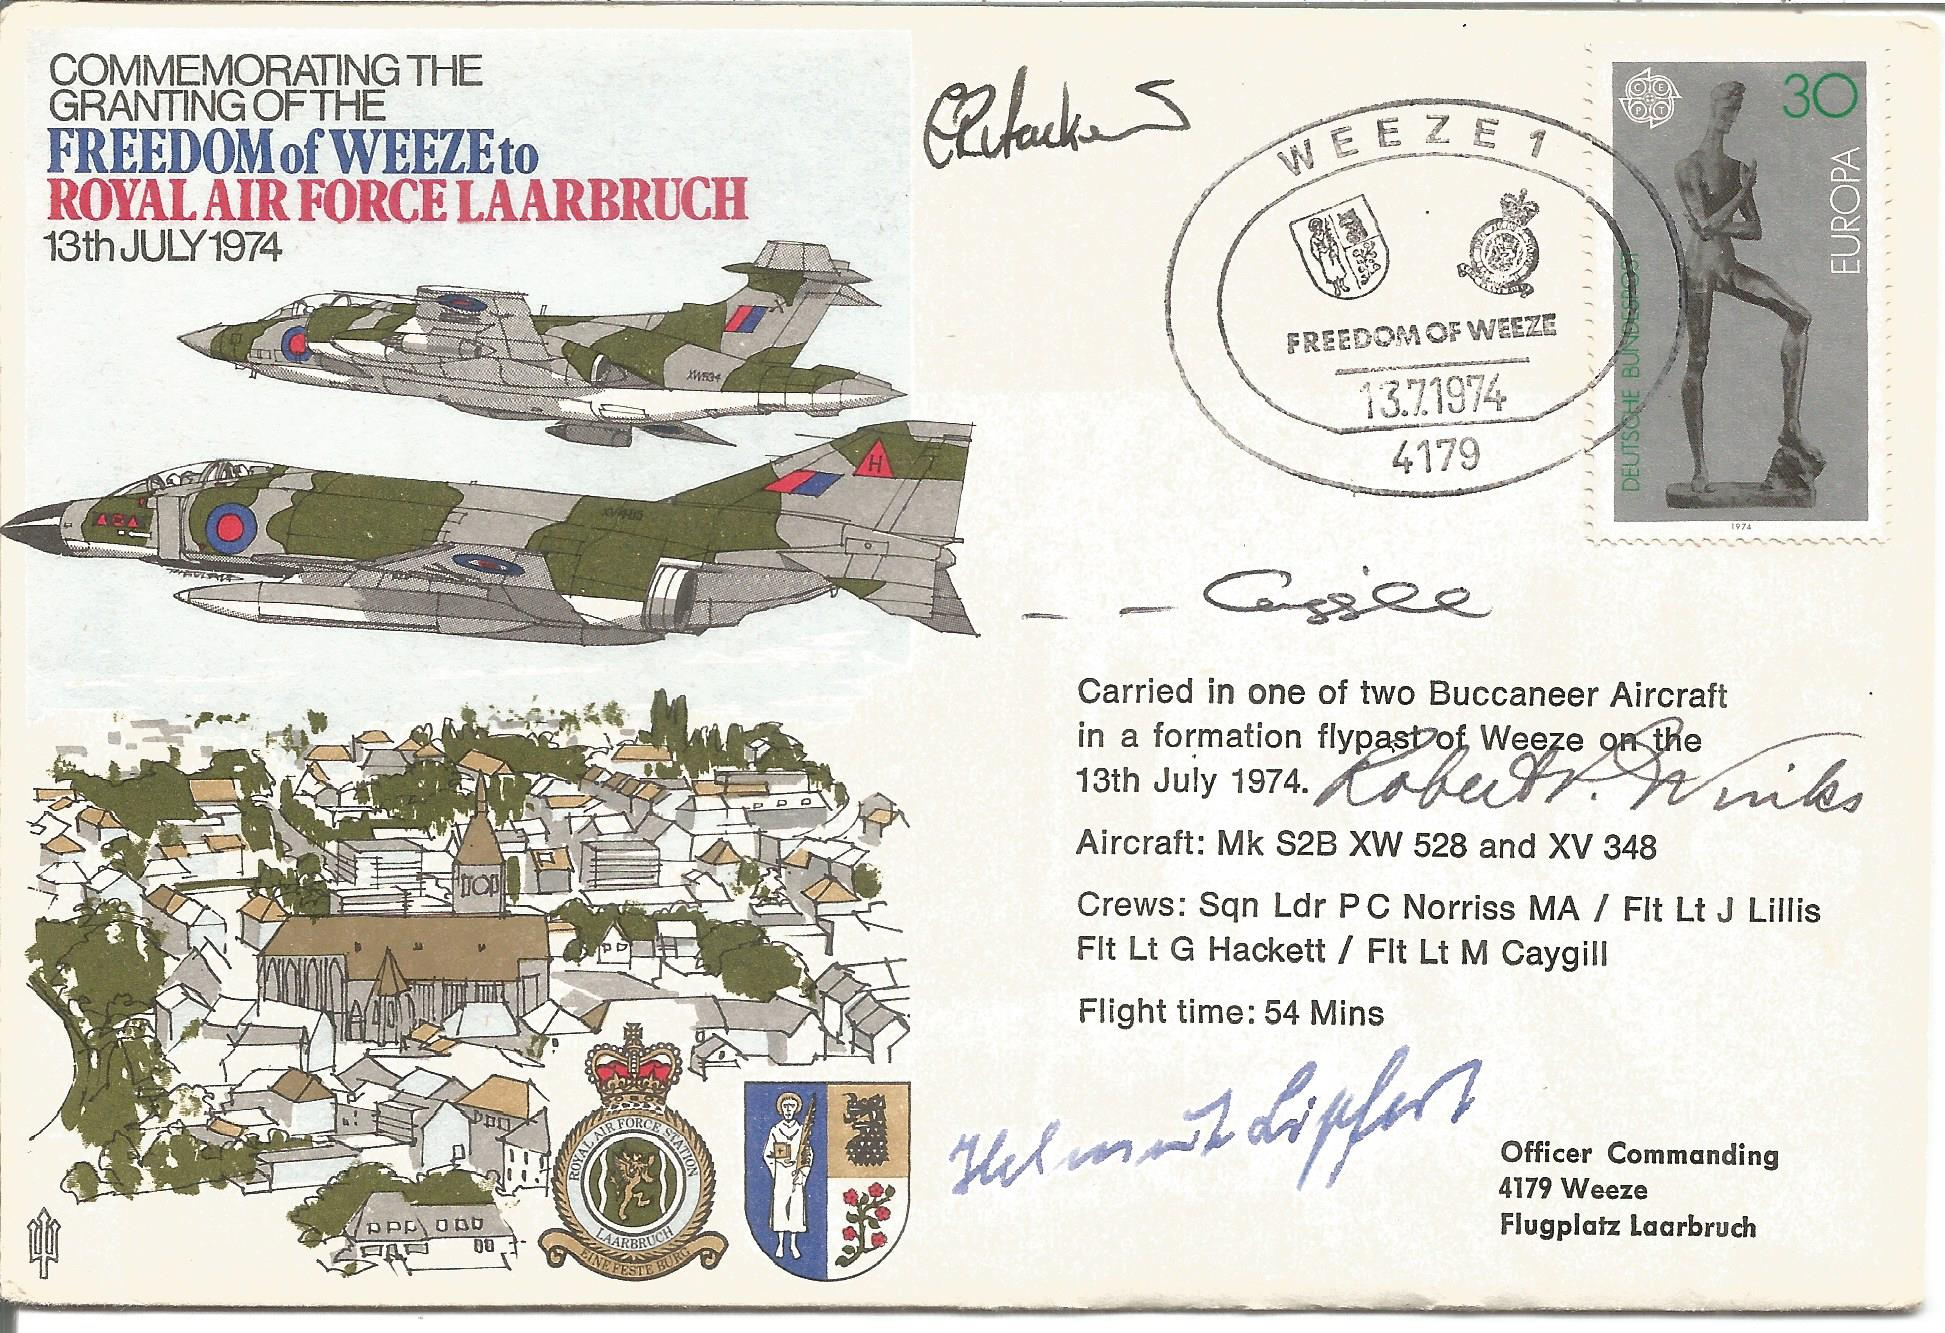 Robert P. Winks, Flt lt M. Caygill plus two other signed Commemorating the Granting of the Freedom